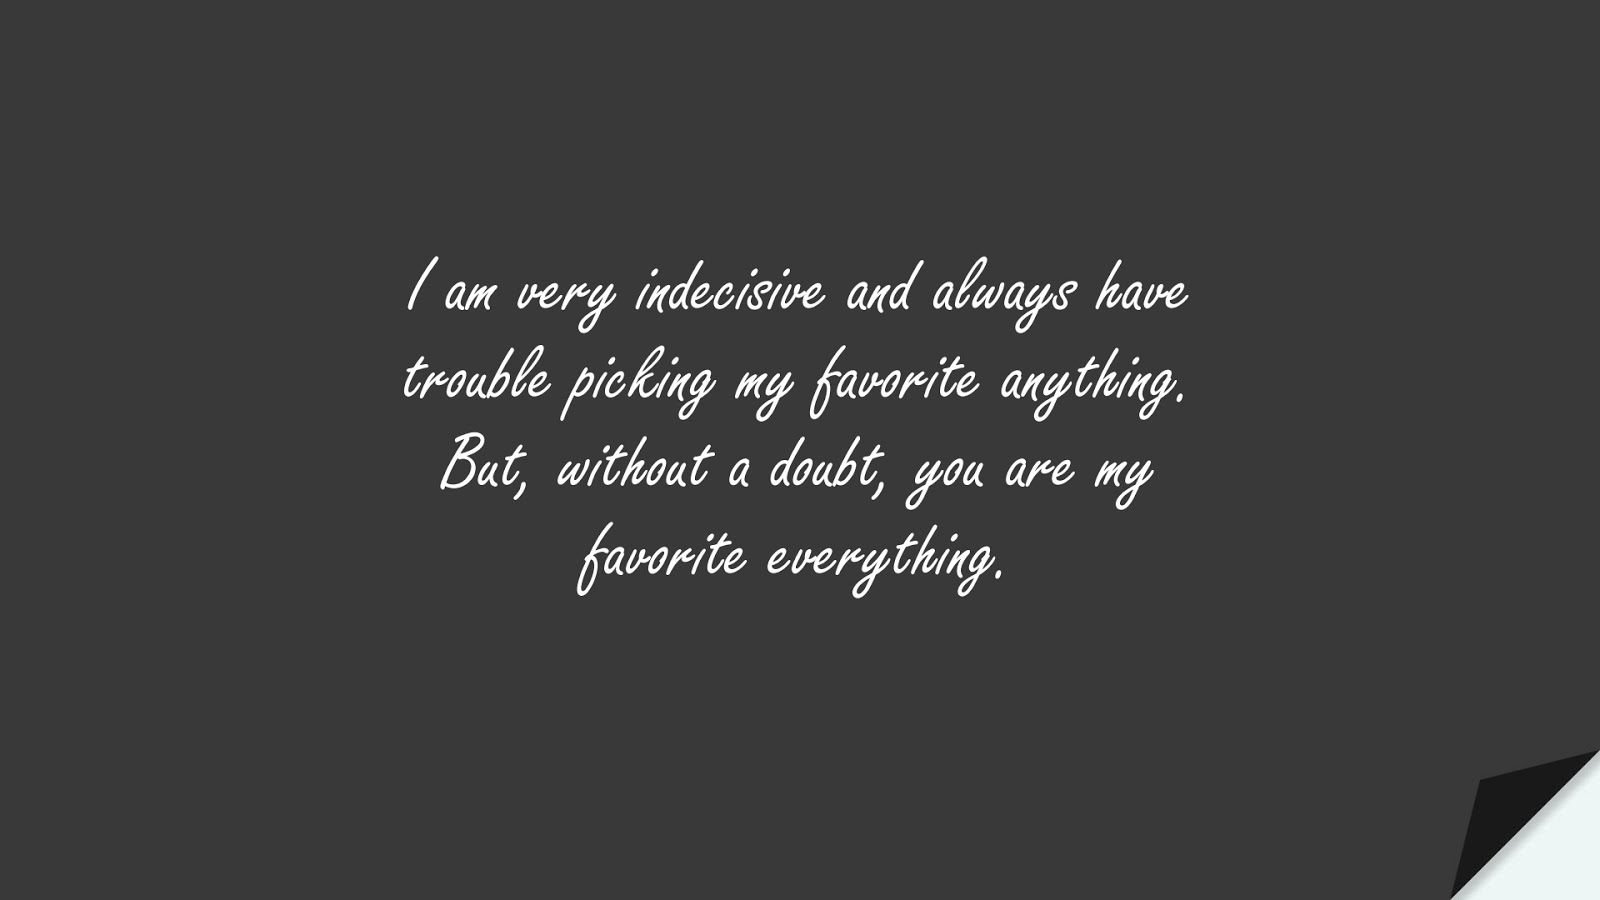 I am very indecisive and always have trouble picking my favorite anything. But, without a doubt, you are my favorite everything.FALSE